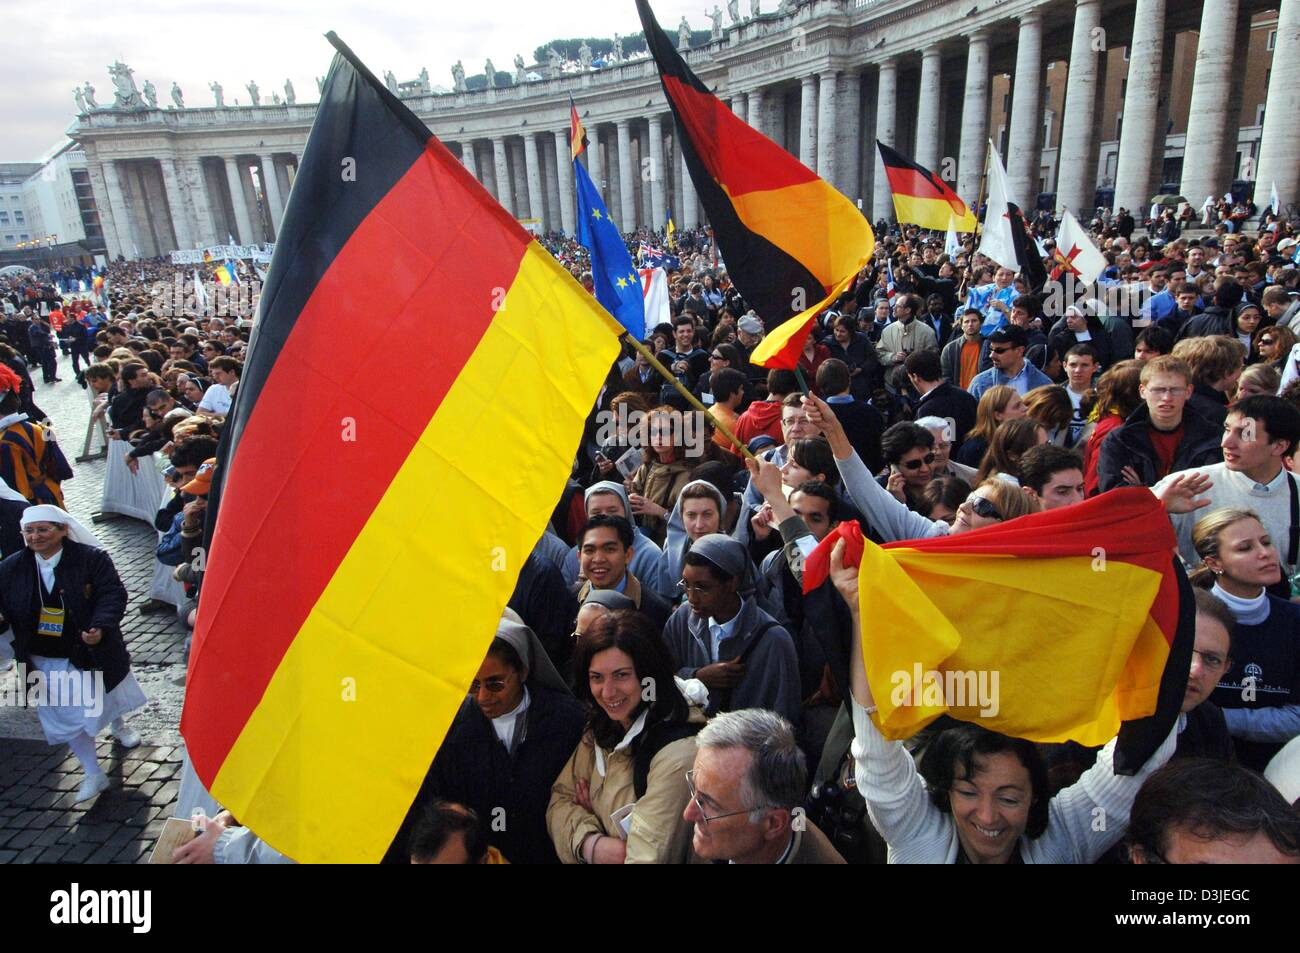 dpa) - German pilgrims sway their flags during the church